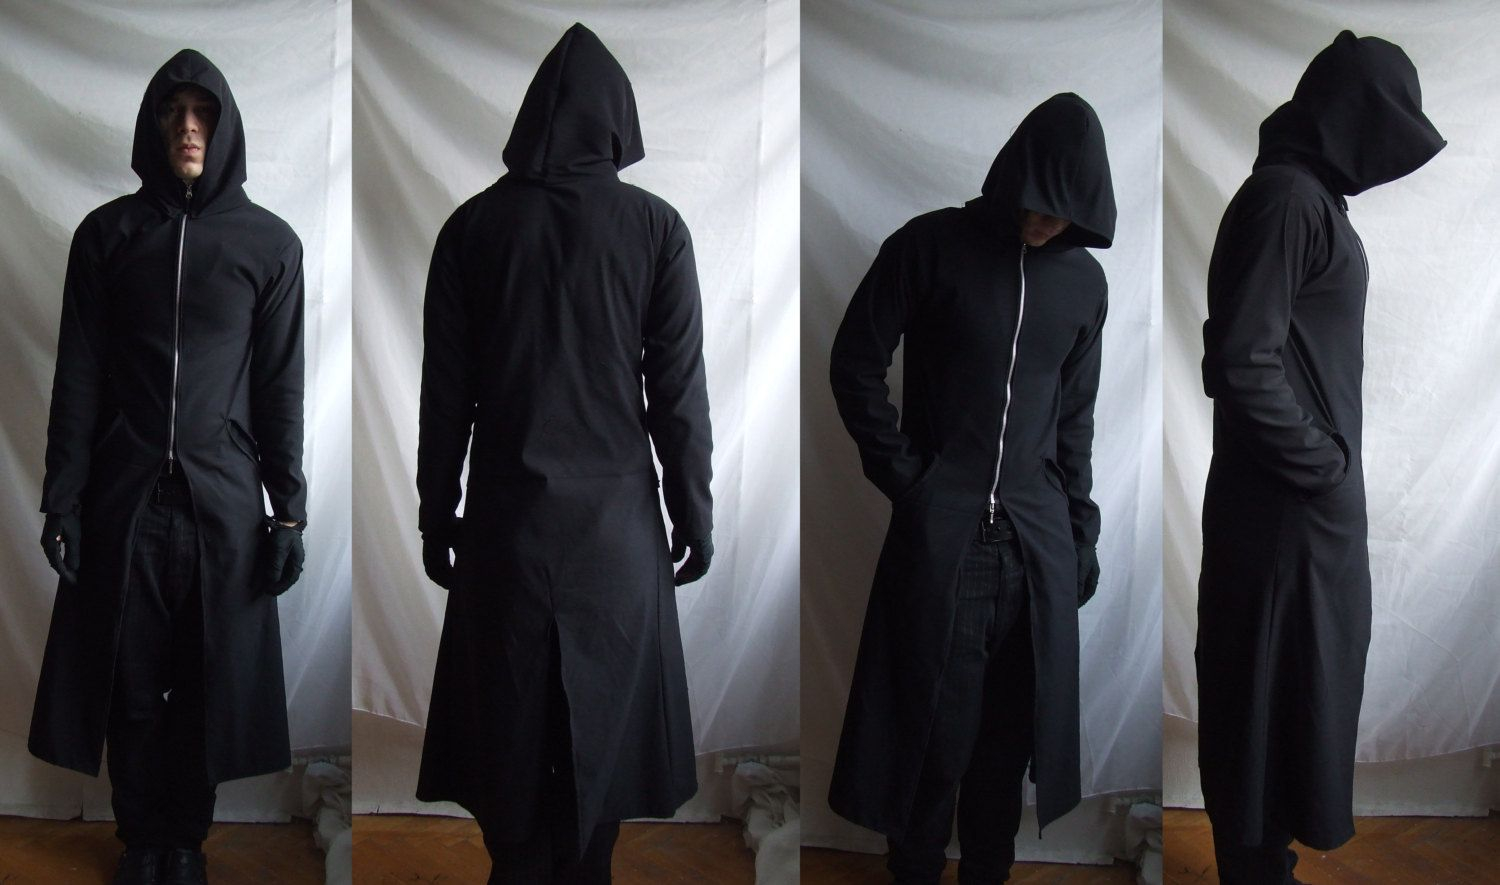 ad25cf167ad GrimReaper TrenchCoat ( long robe with huge hoodie custom made related to  gothic industrial post apocalyptic ). $95.00, via Etsy.